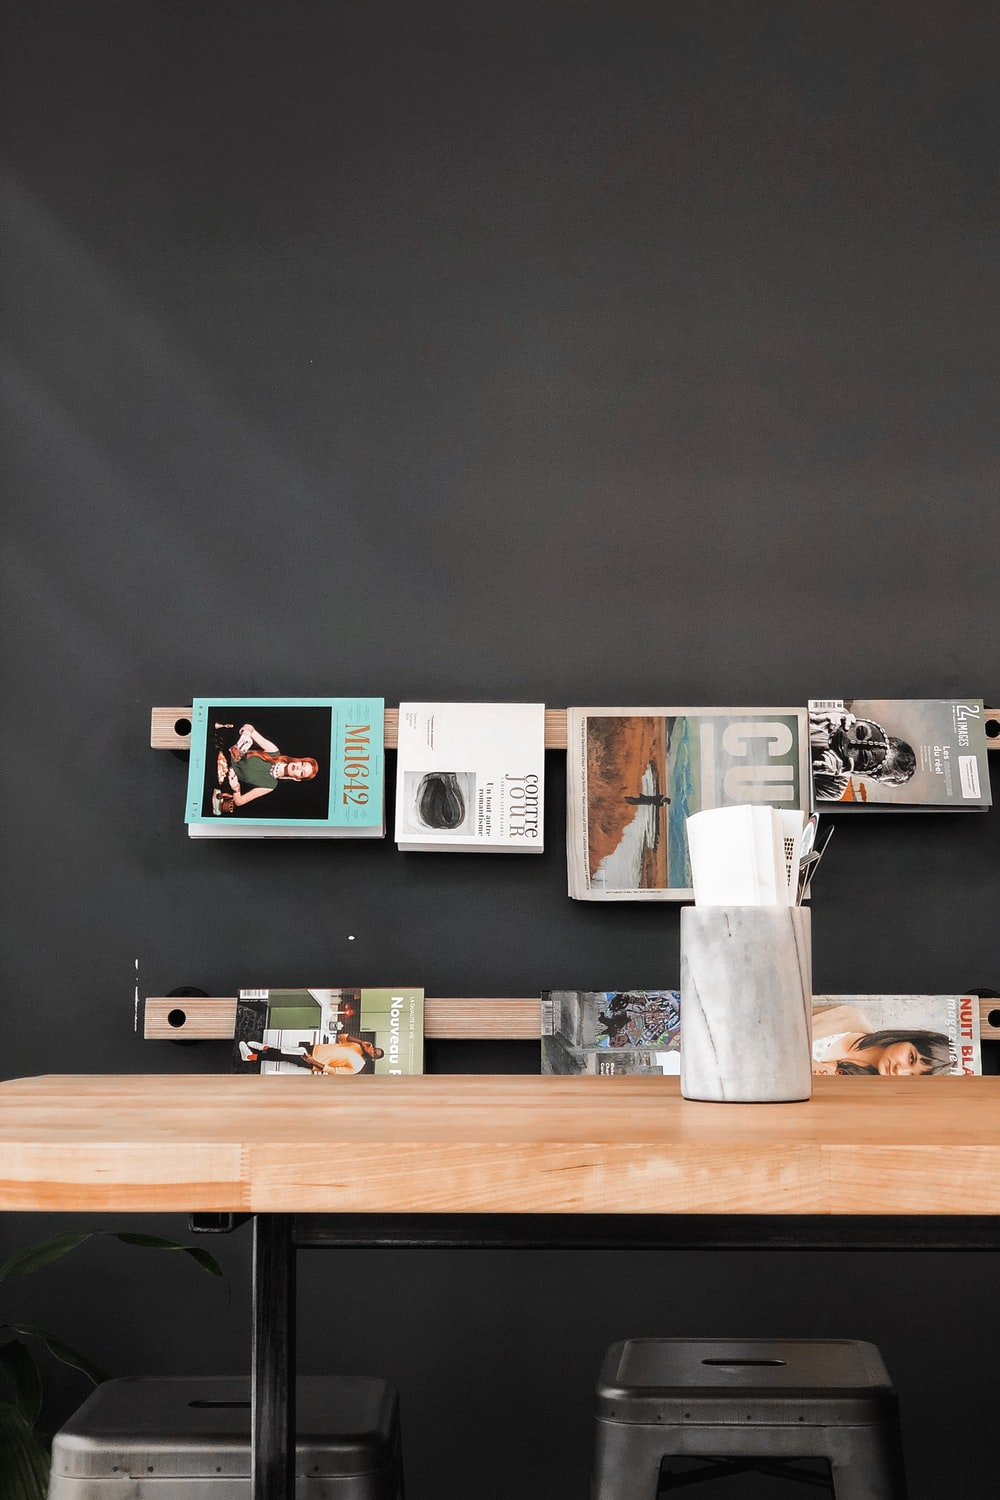 books and magazines hanged over wooden table